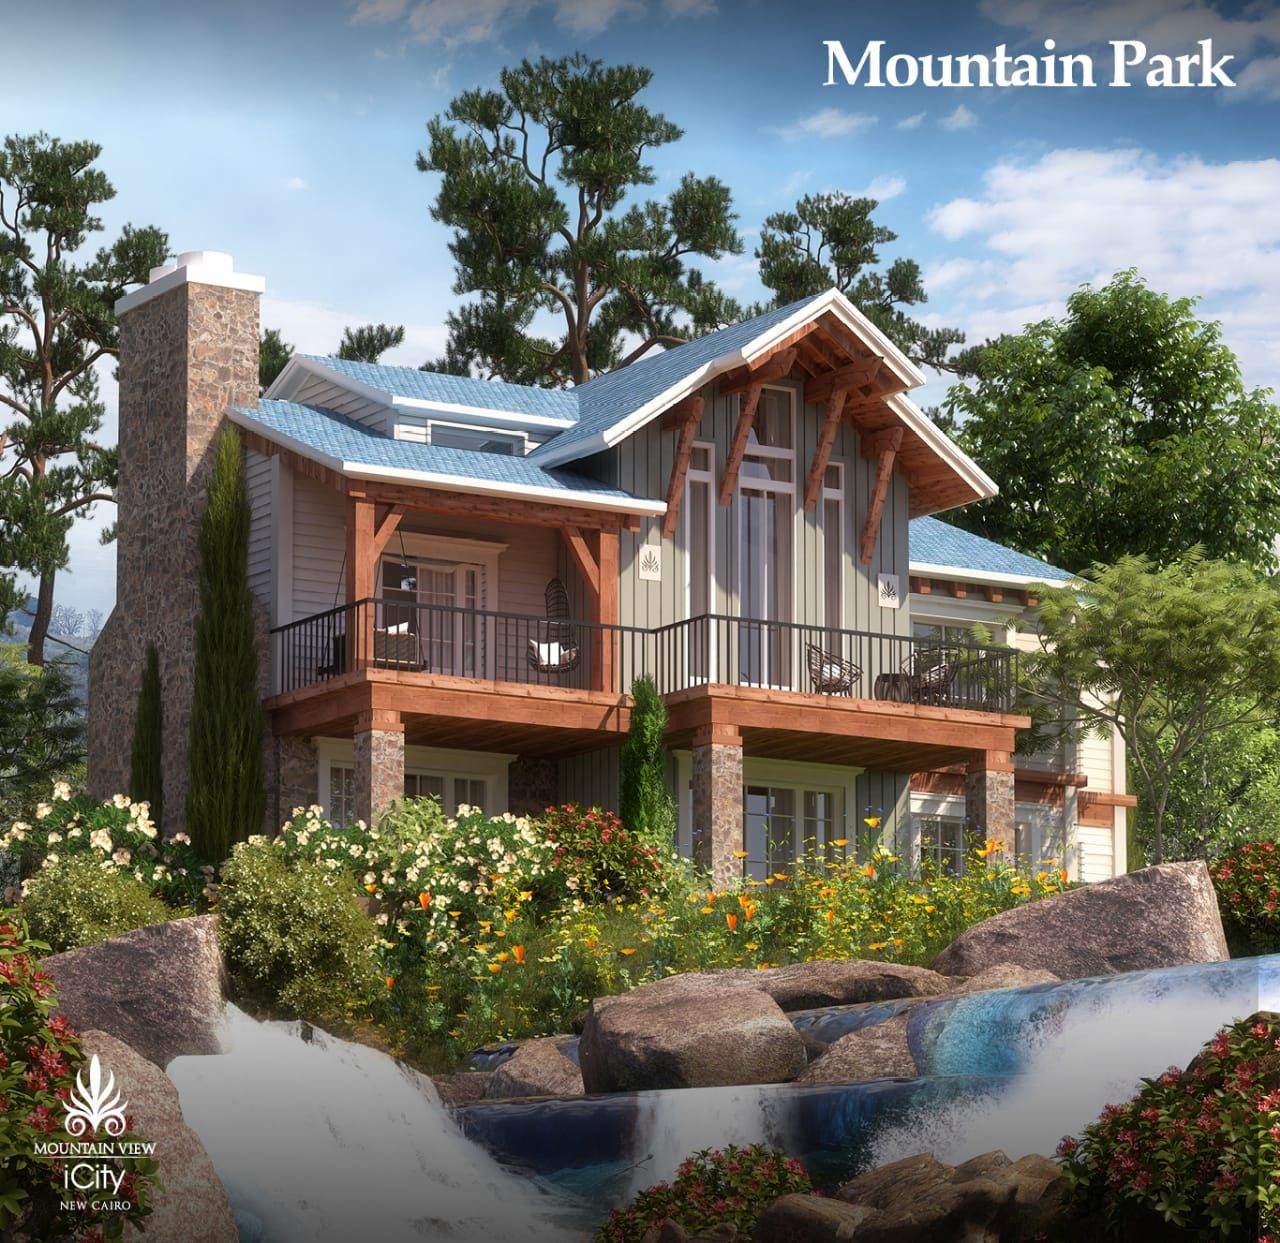 Apartment 85㎡ For Sale in Mountain View iCity